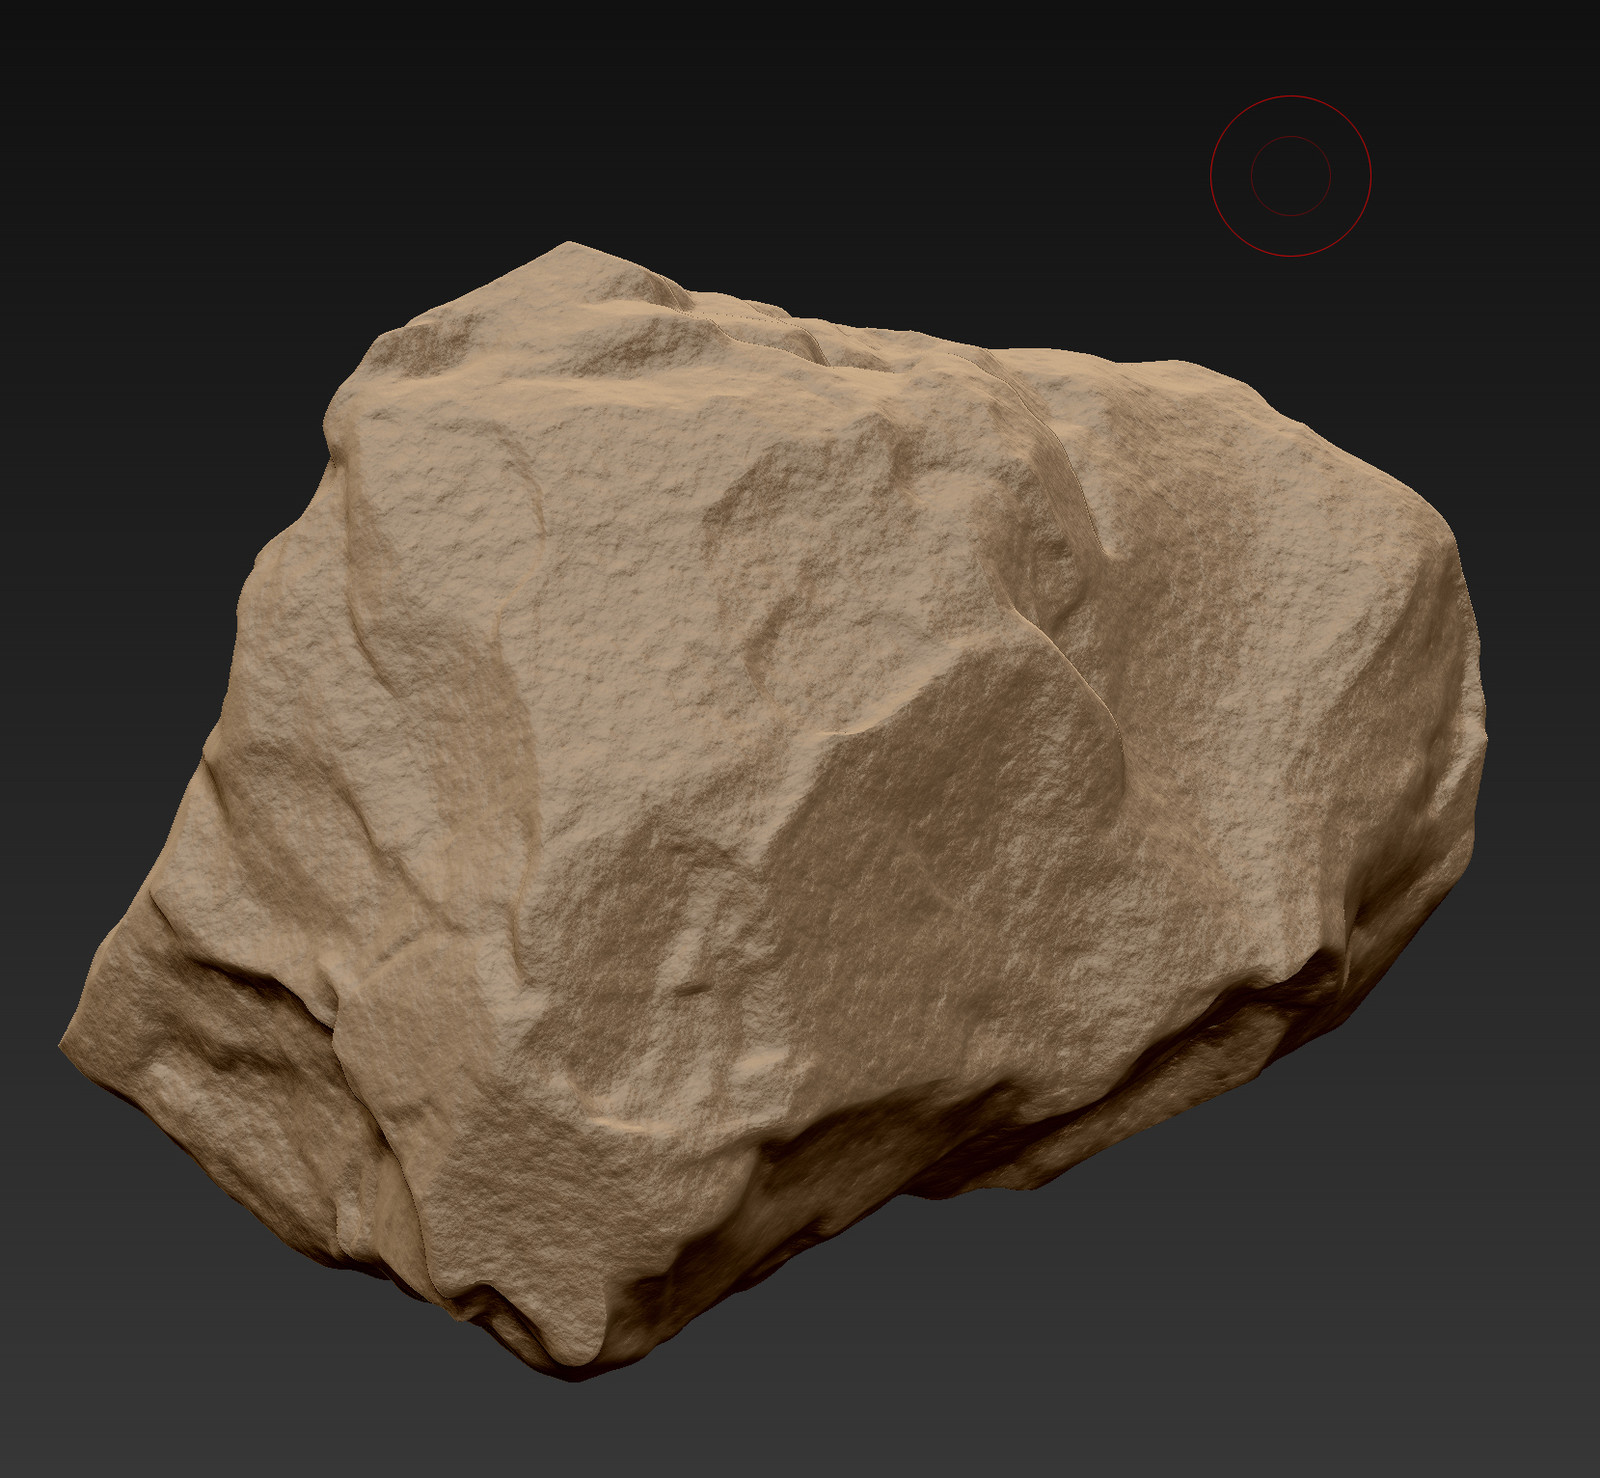 Sculpting a Rock in Zbrush, adding surfacenoise.